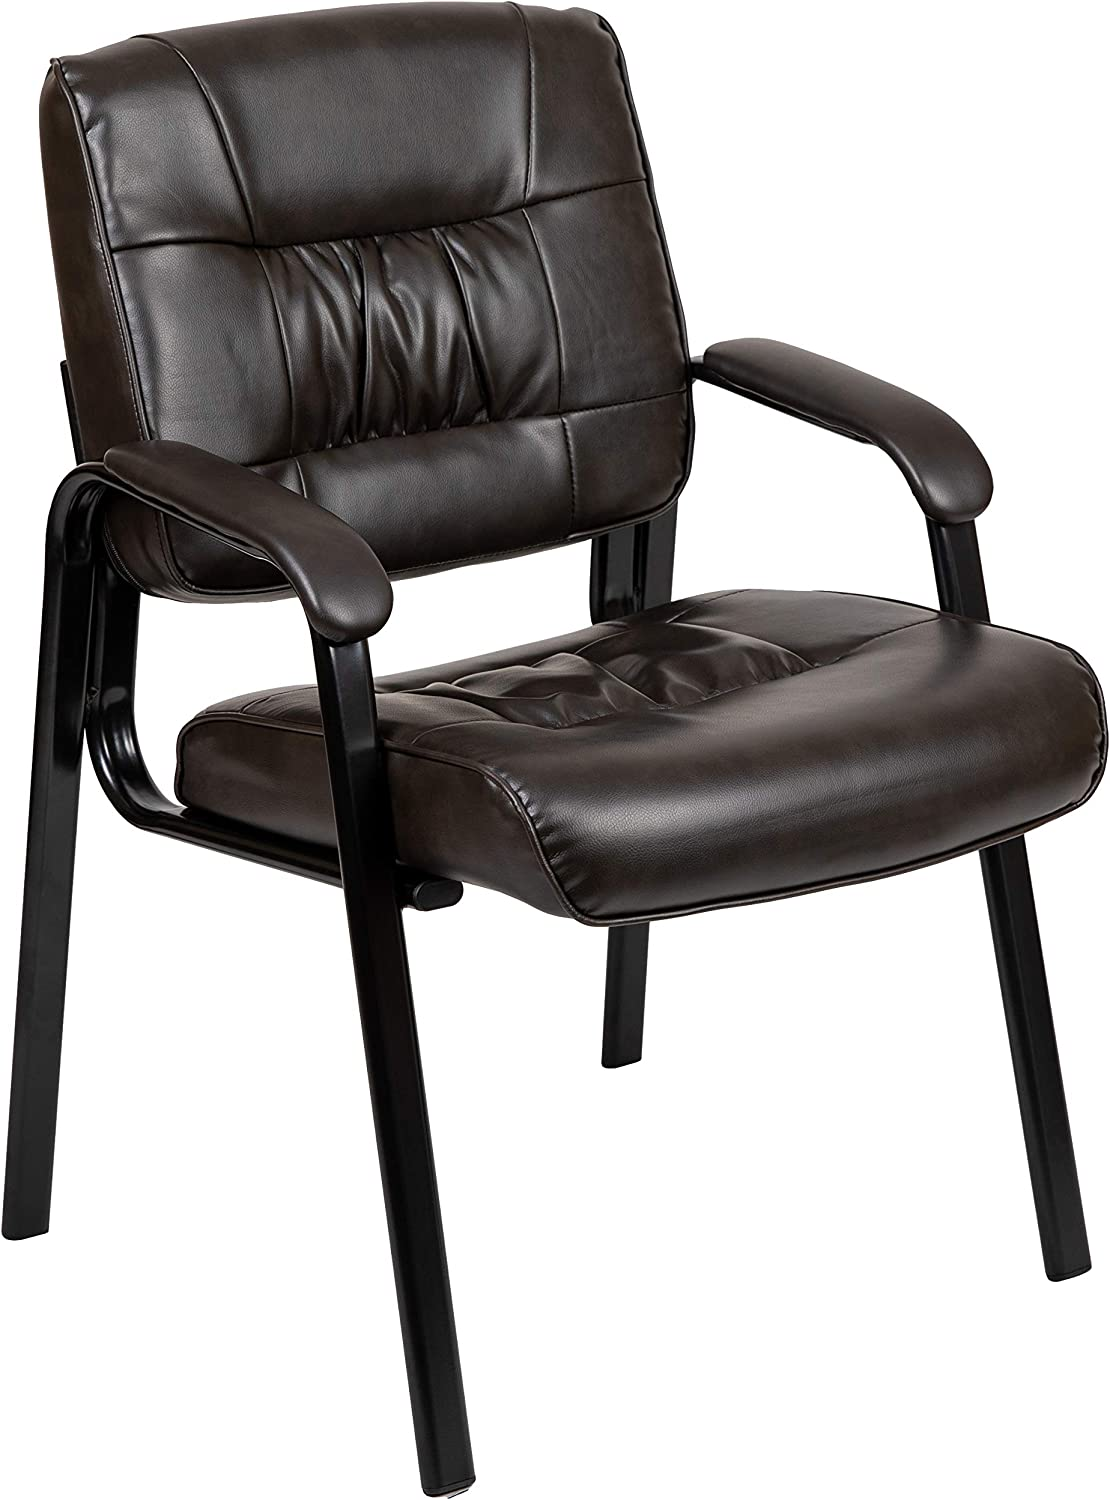 Flash Furniture Brown LeatherSoft Antimicrobial / Antibacterial Medical Side Chair with Black Metal Frame